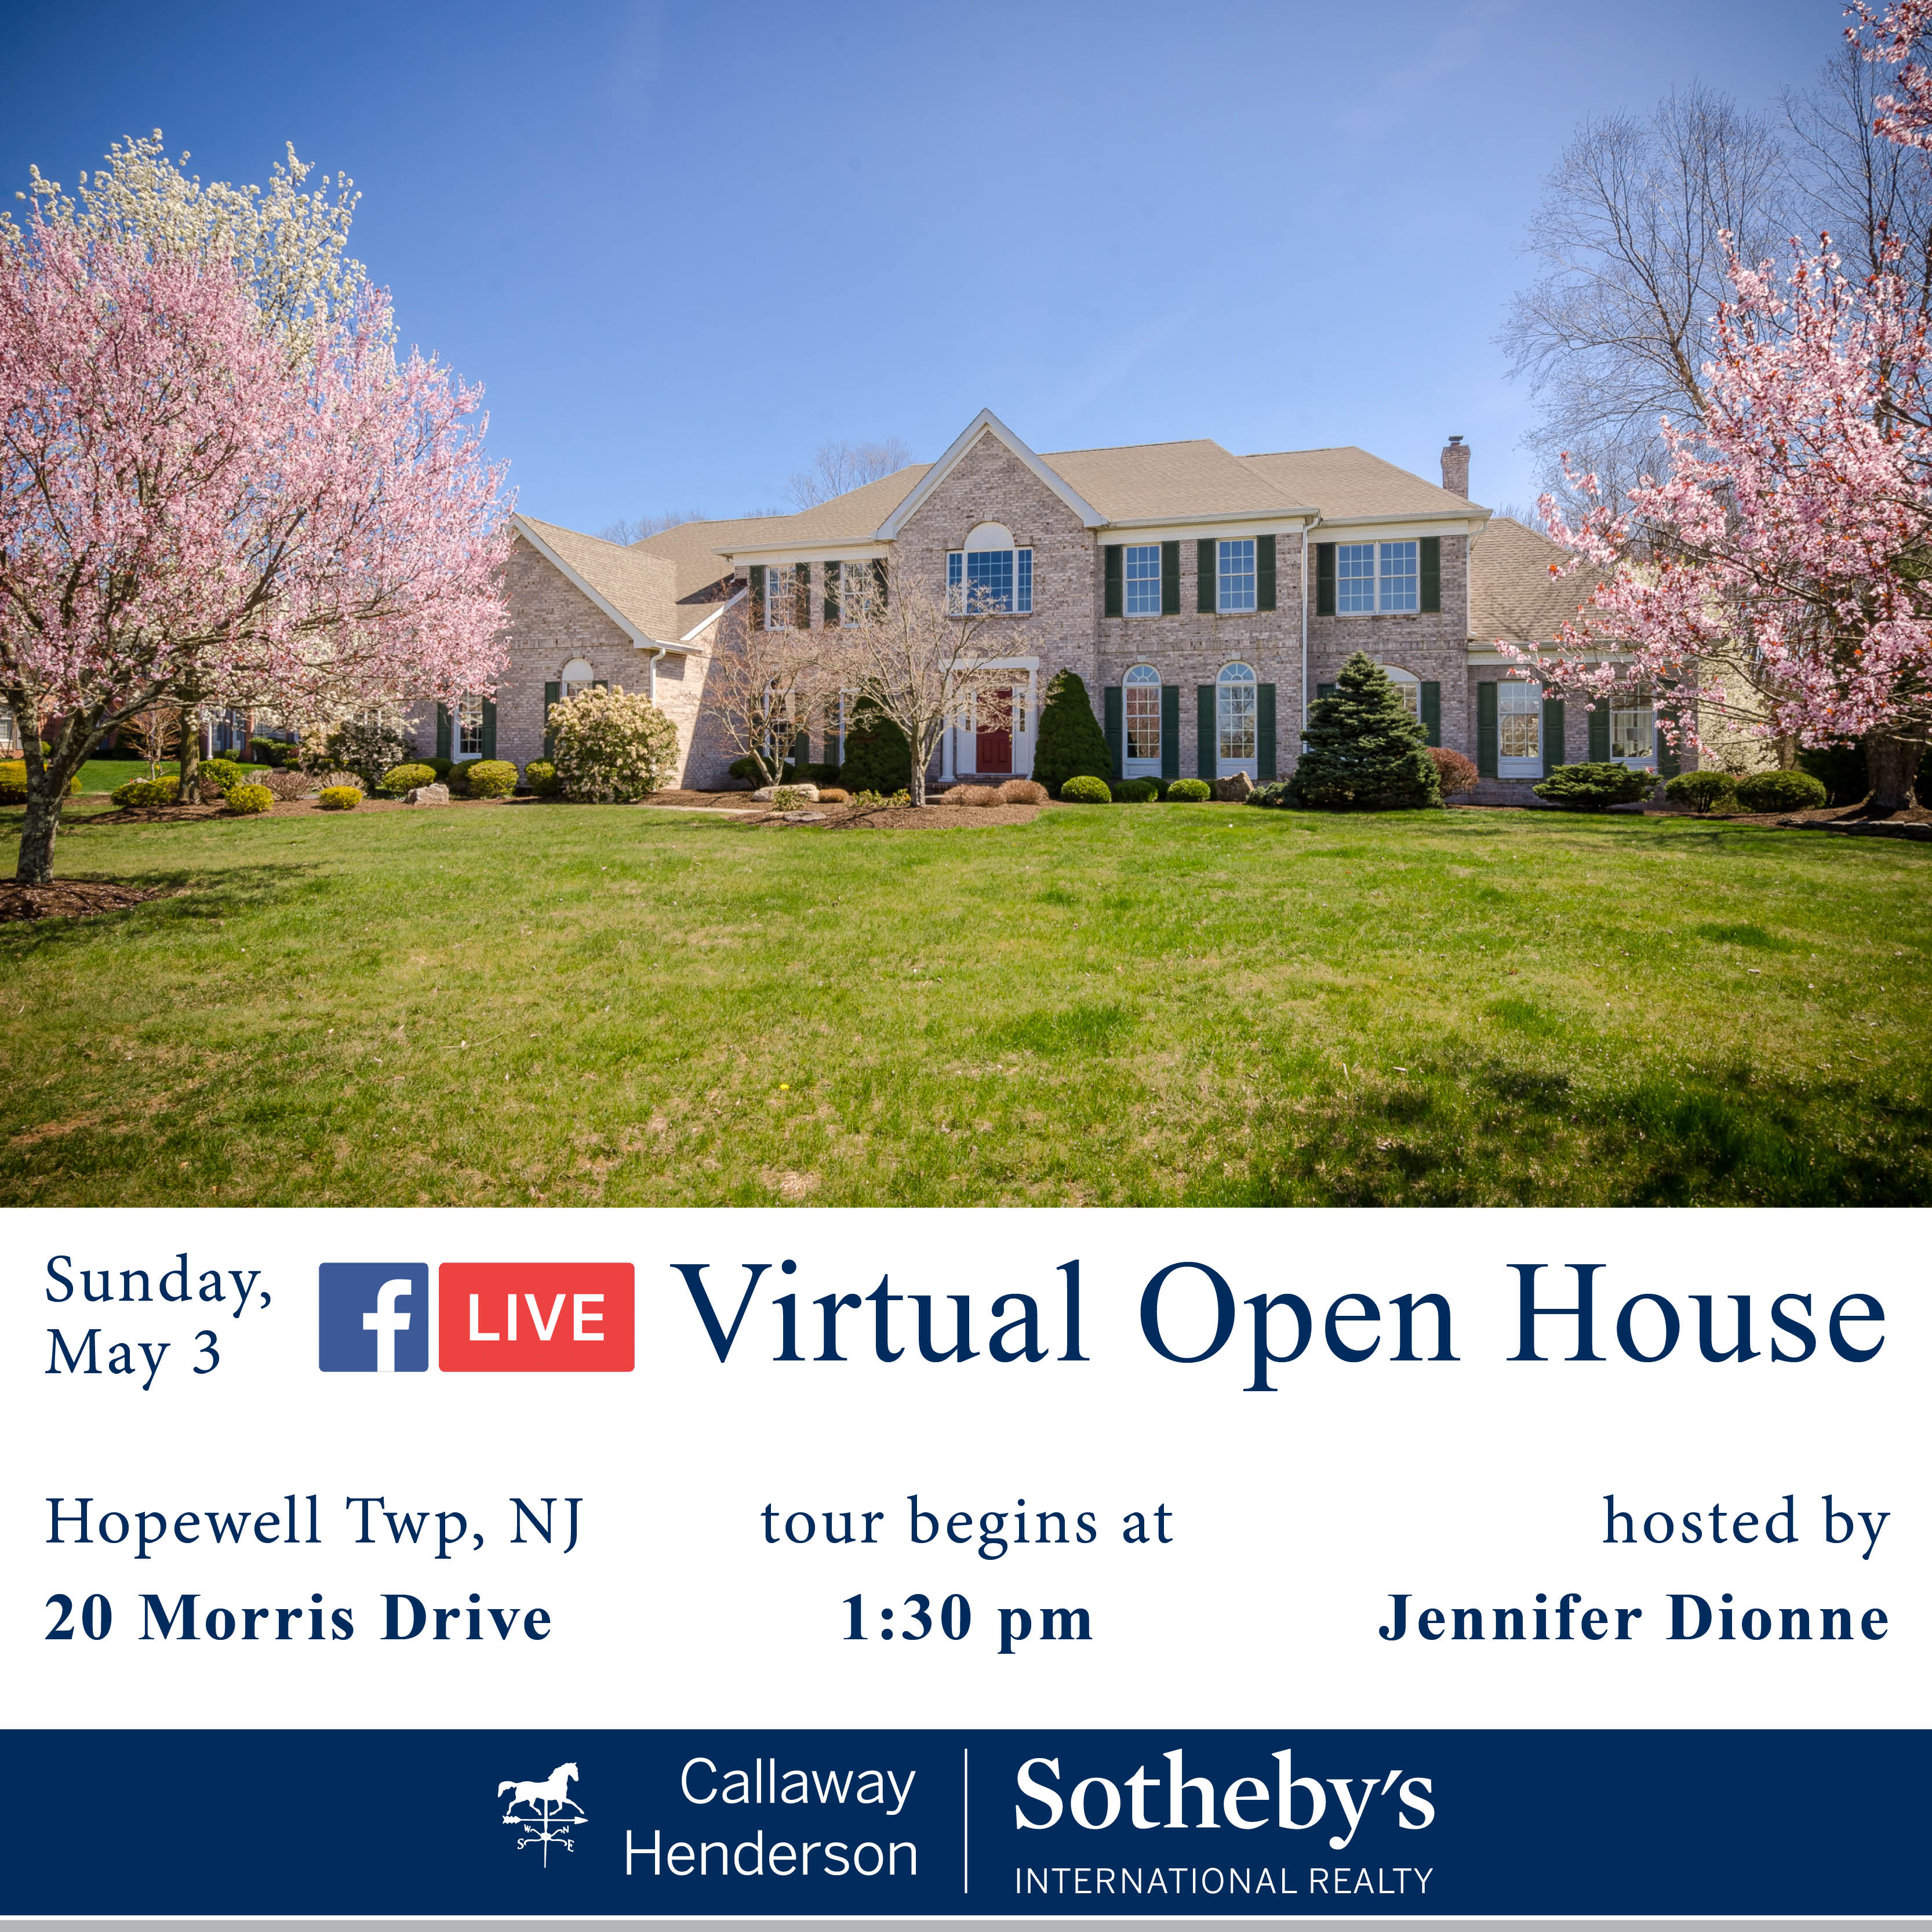 Live Virtual Open House-200503 0130-Morris Drive 20 v2